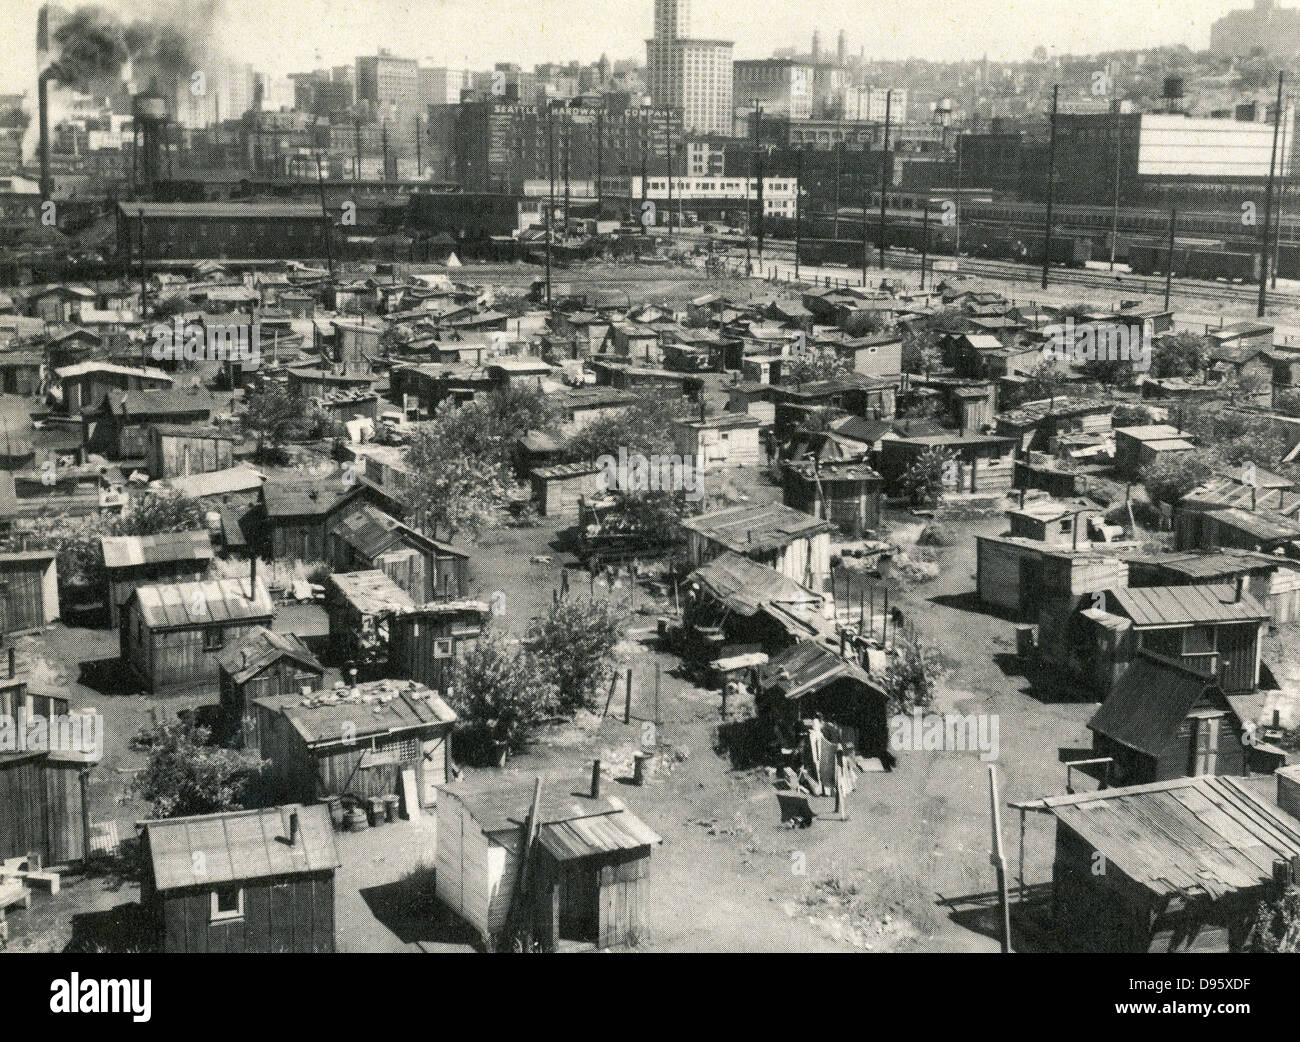 The American Depression 1930s: Thousands of jobless lived in shanty towns nicknamed 'Hoovervilles', earning - Stock Image